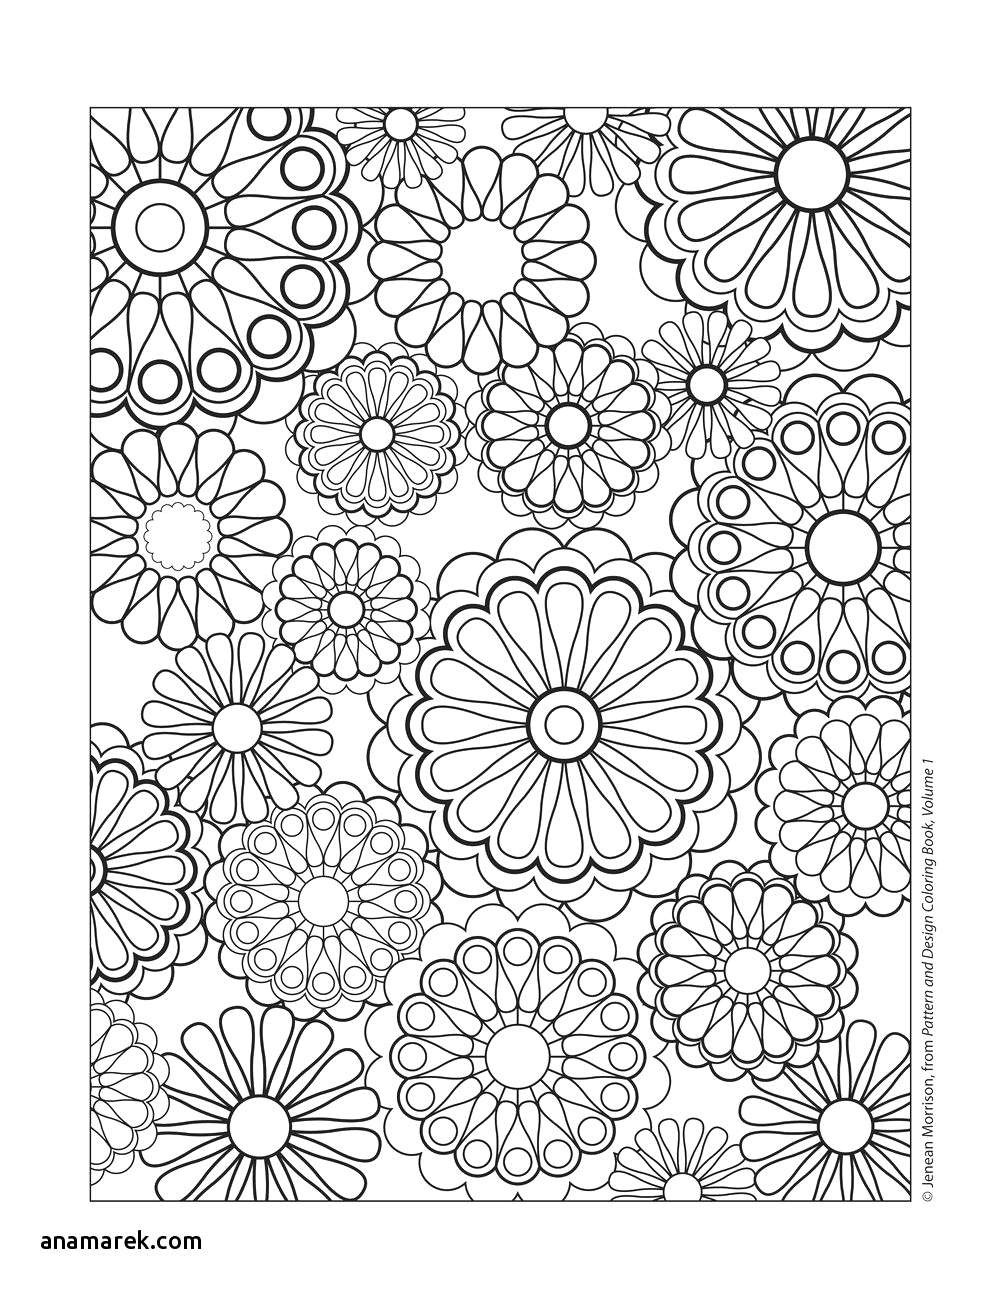 Fall Coloring Pages For Adults Printable Coloring Books For Adults New Stock Fall Coloring Pages